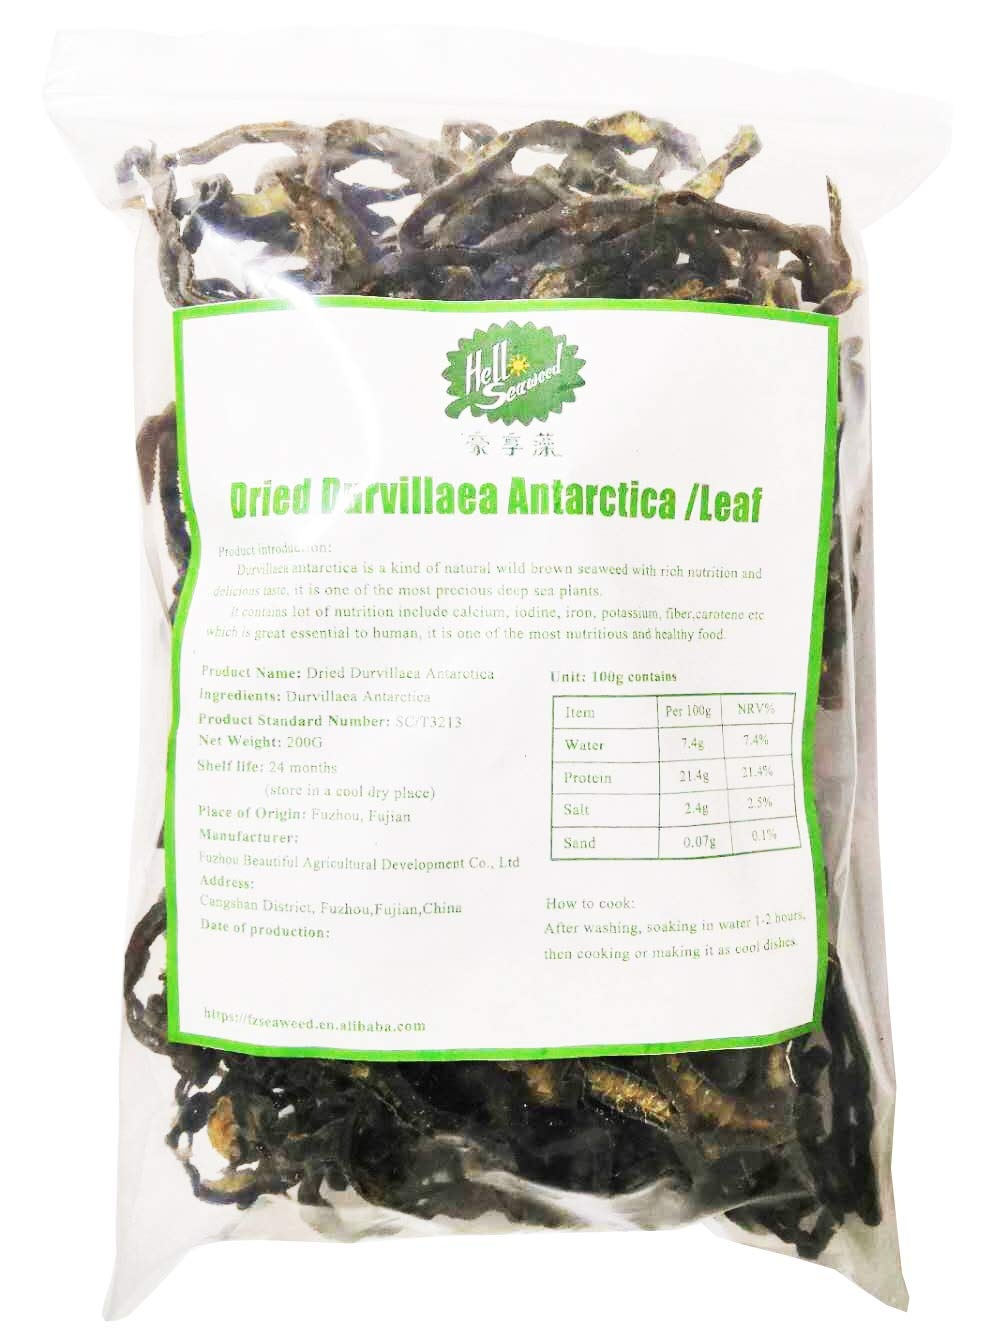 Natural High Nutritious wild Brown Seaweed For Food 200g (pack of 8) by Fuzhou Wonderful (Image #2)